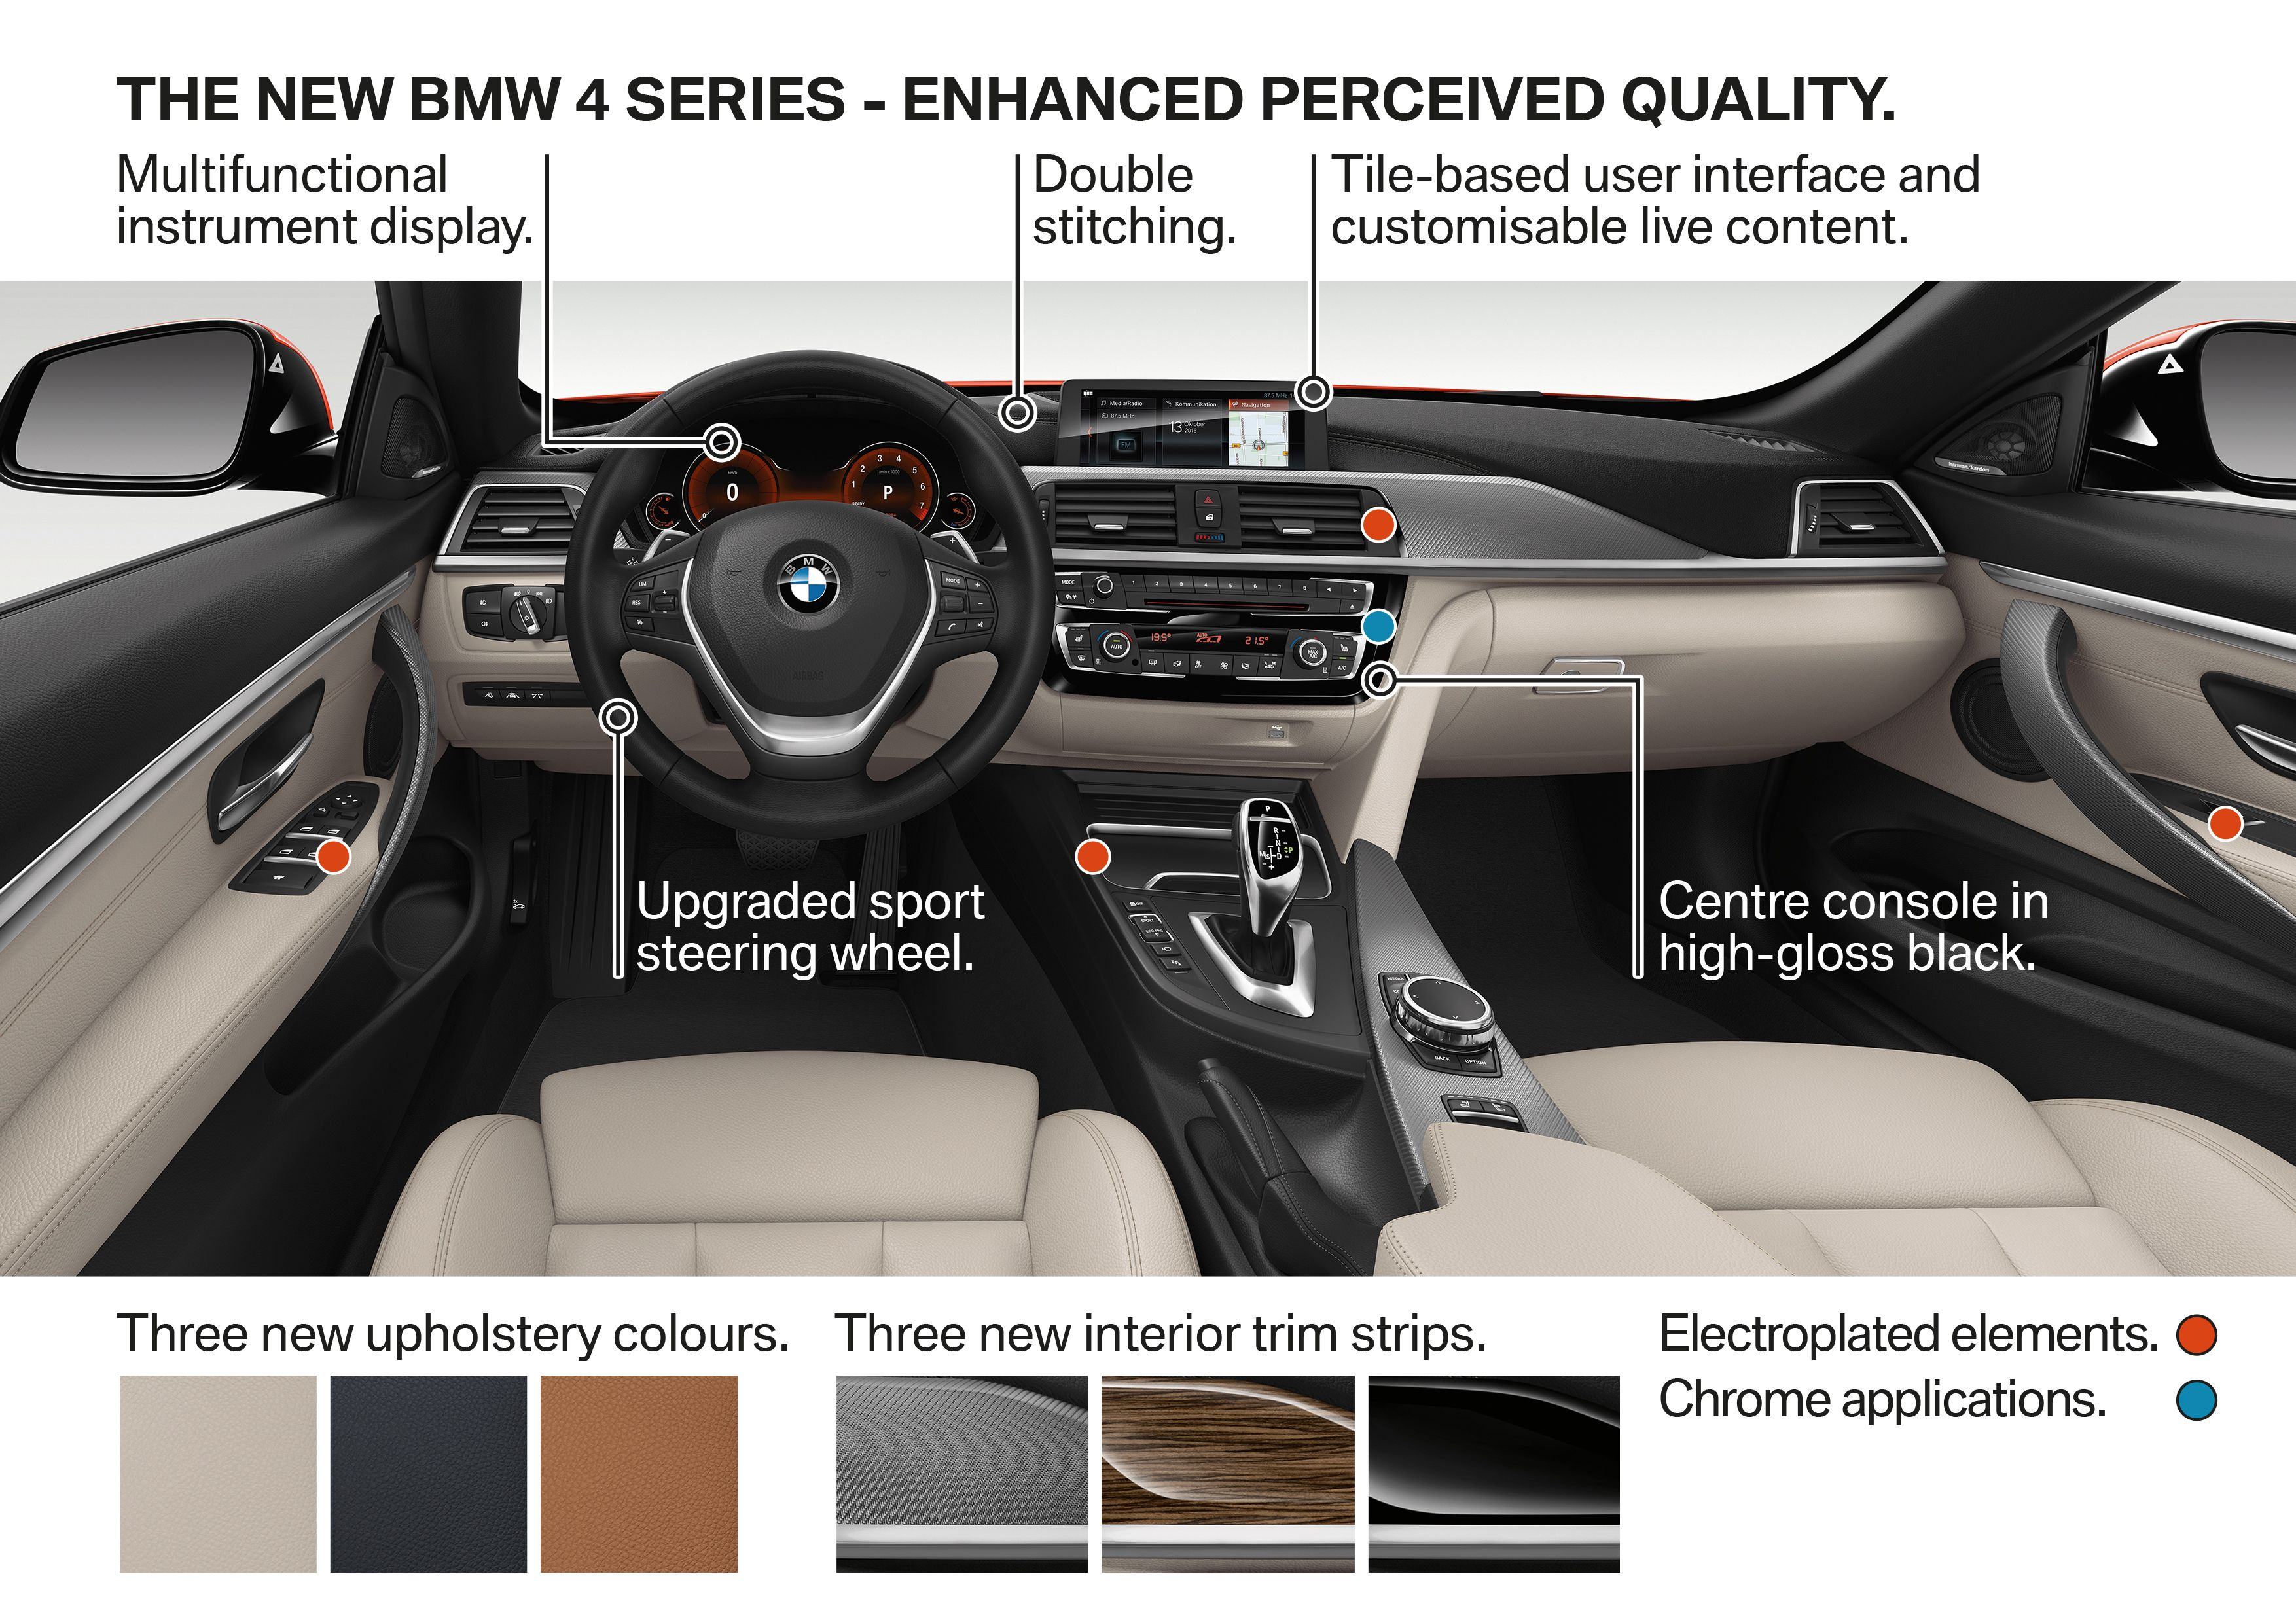 Bmw F32 4series Coupe Snapperrocksblue F33 Convertible Xdrive Mpackage Sunsetorange Facelift Mperformance Parts Provocat Bmw 4 Series New Bmw Bmw